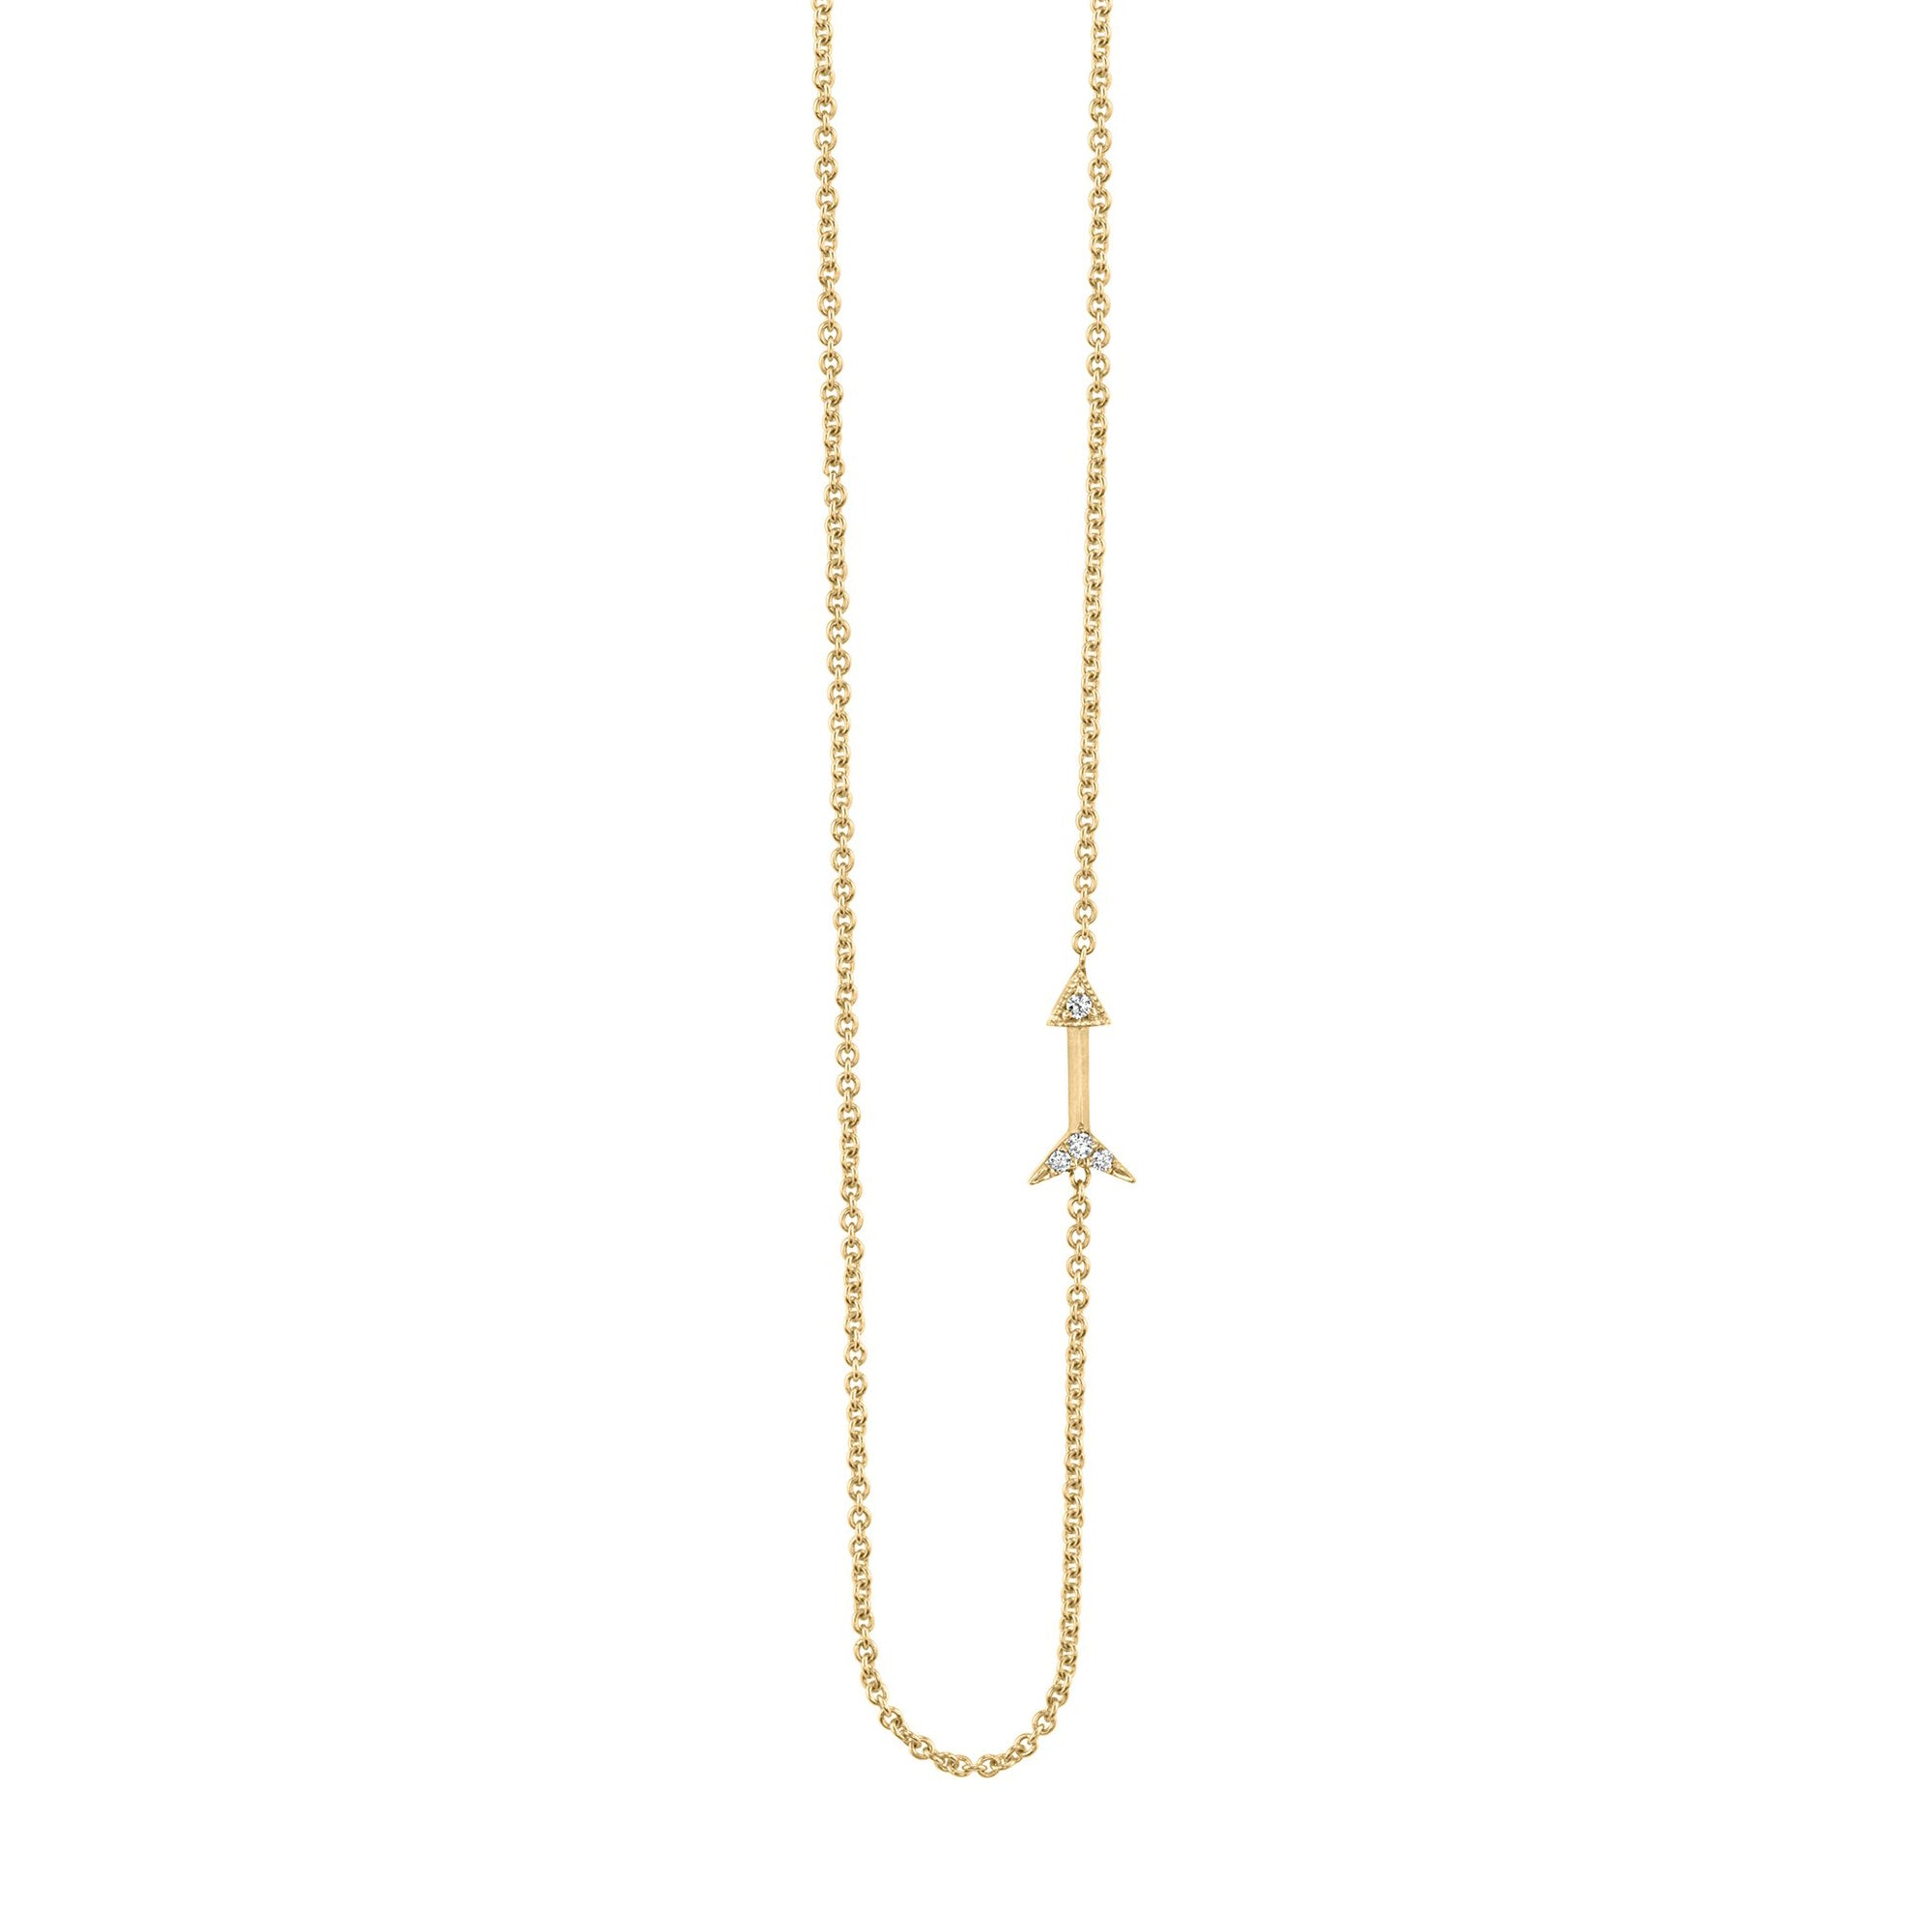 Lizzie Mandler Petite Arrow Necklace - Diamond & Gold - Necklaces - Broken English Jewelry